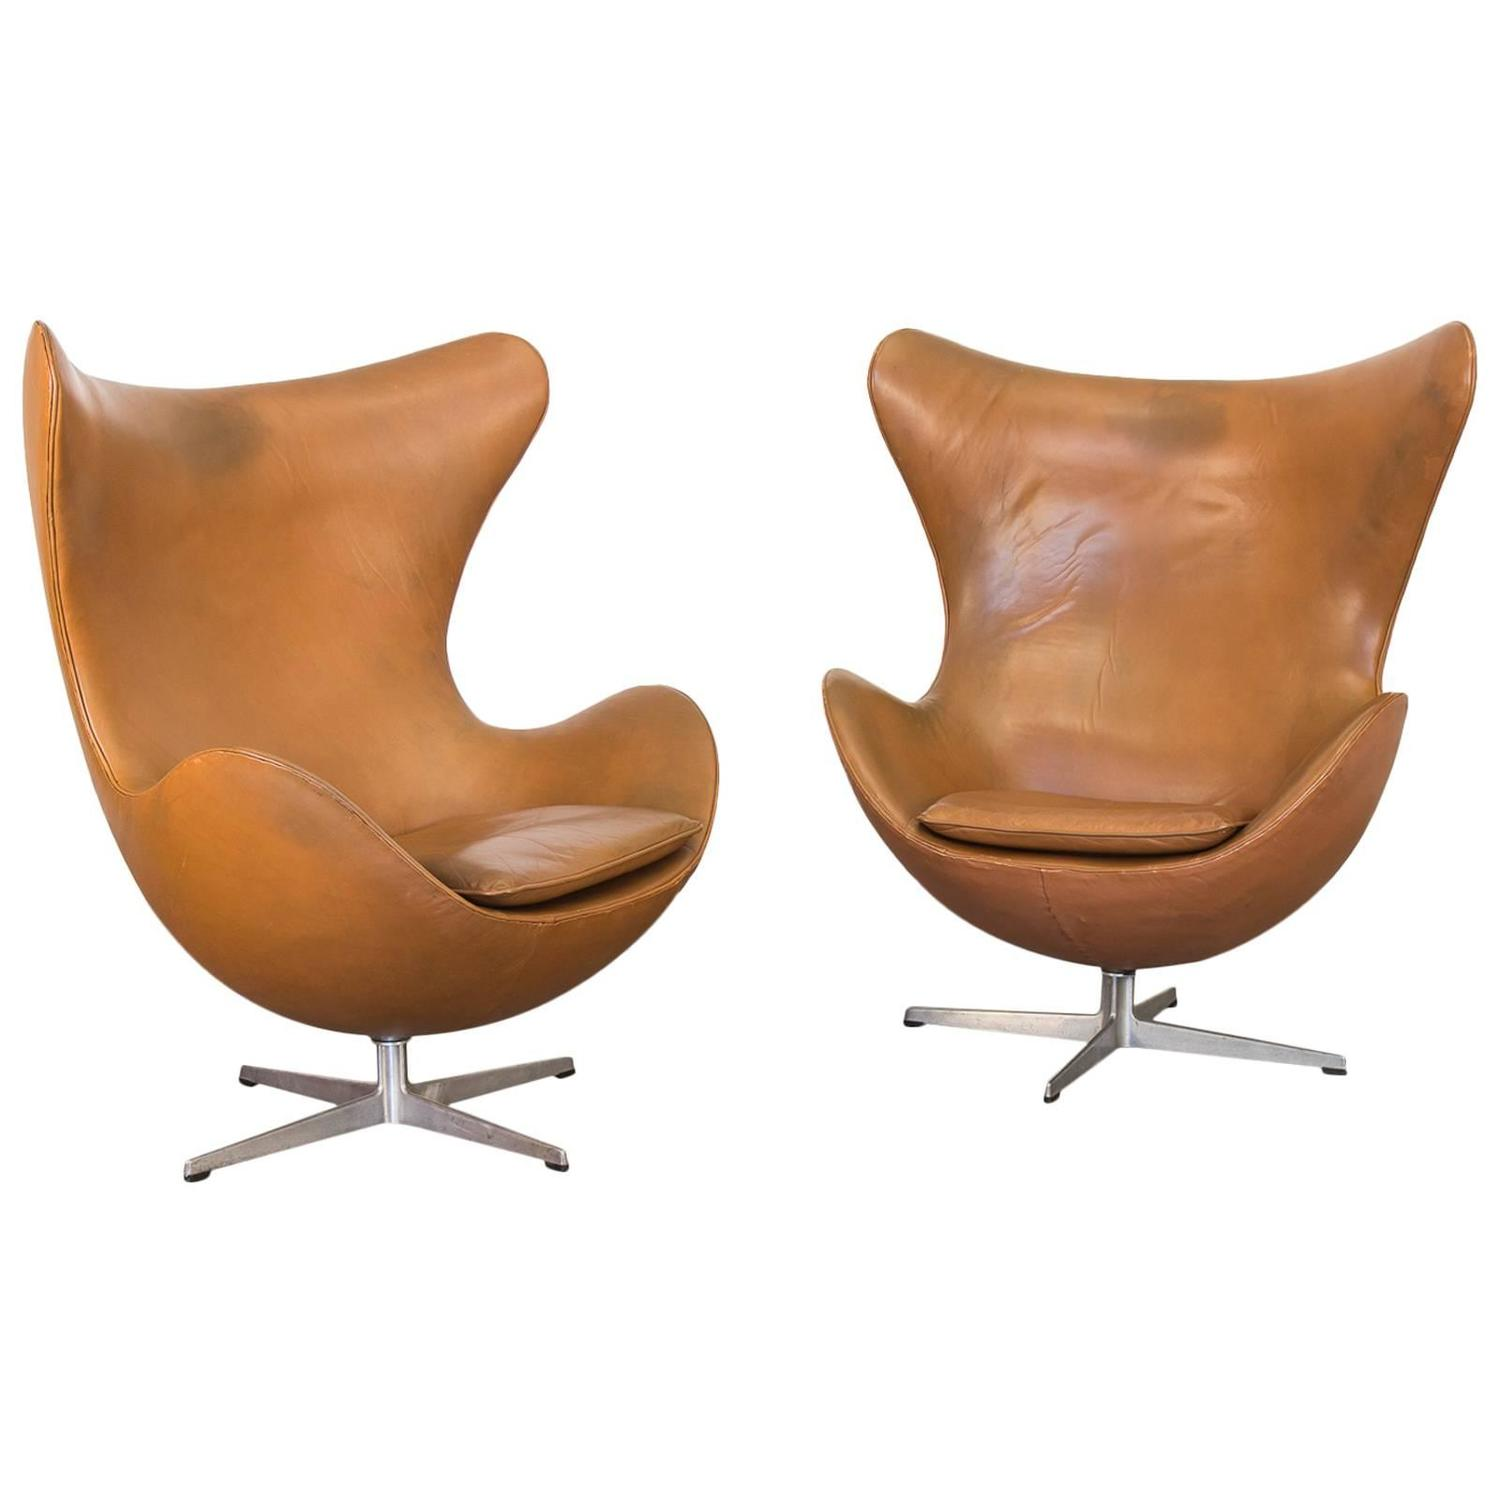 vintage leather egg chairs by arne jacobsen for sale at. Black Bedroom Furniture Sets. Home Design Ideas